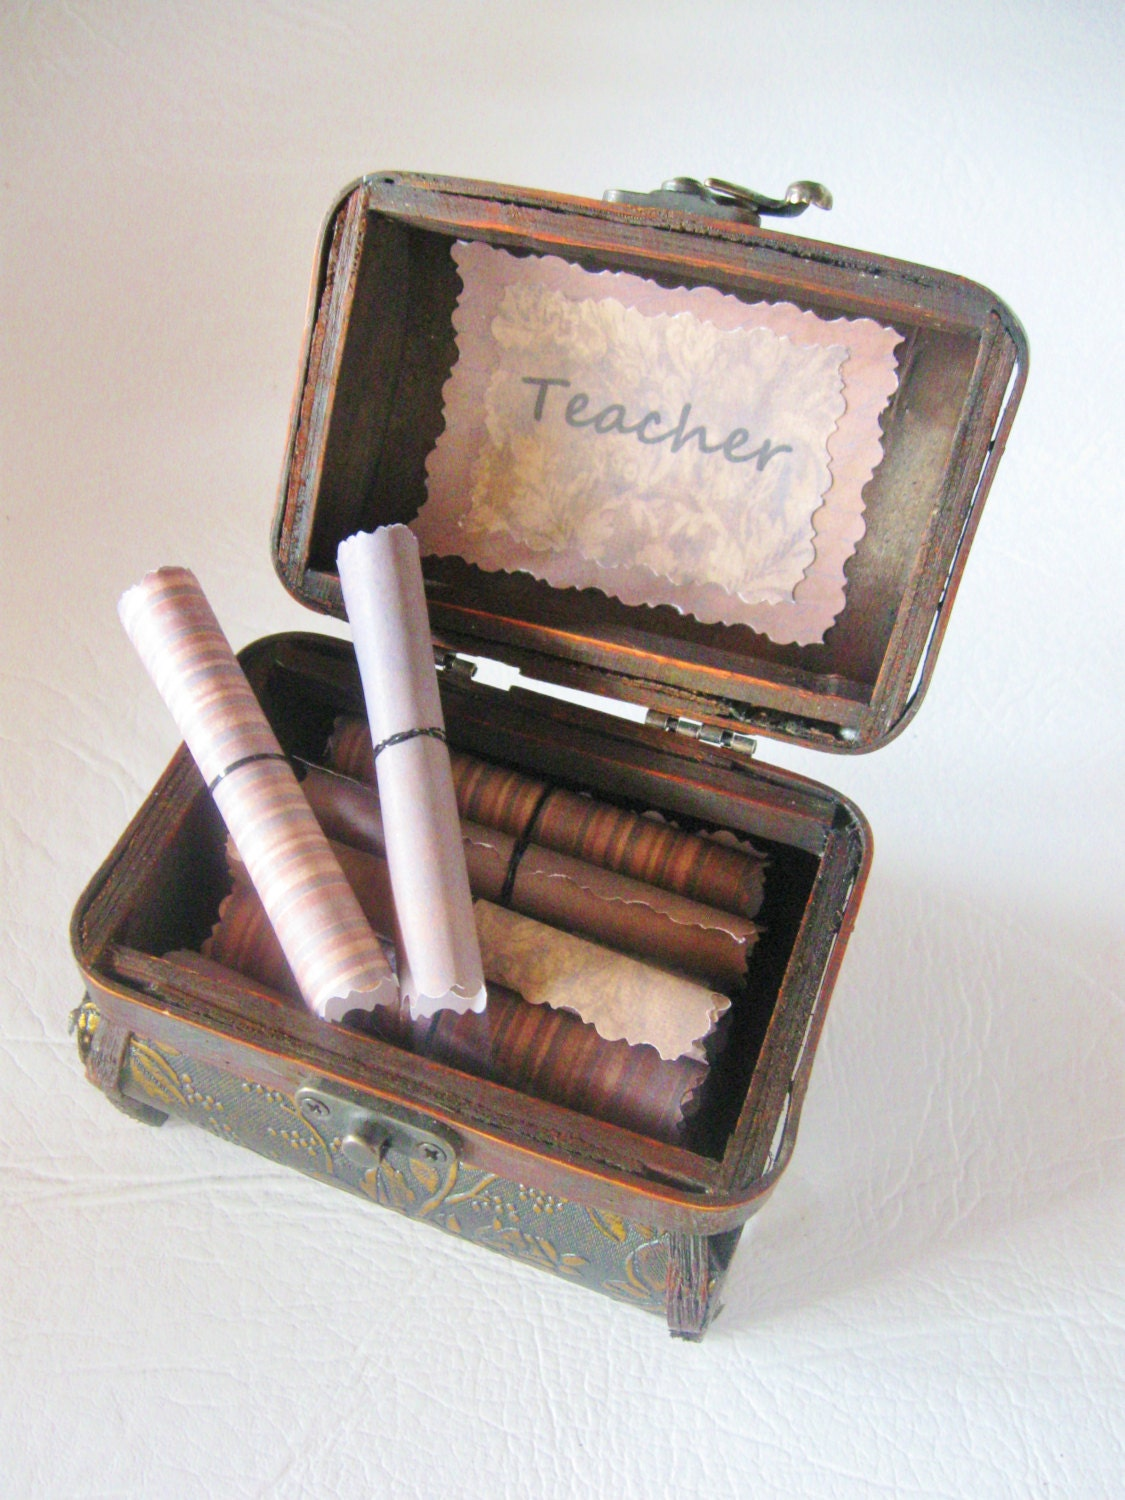 Teacher Gift, Teacher Scroll Box, Teacher Christmas Gift